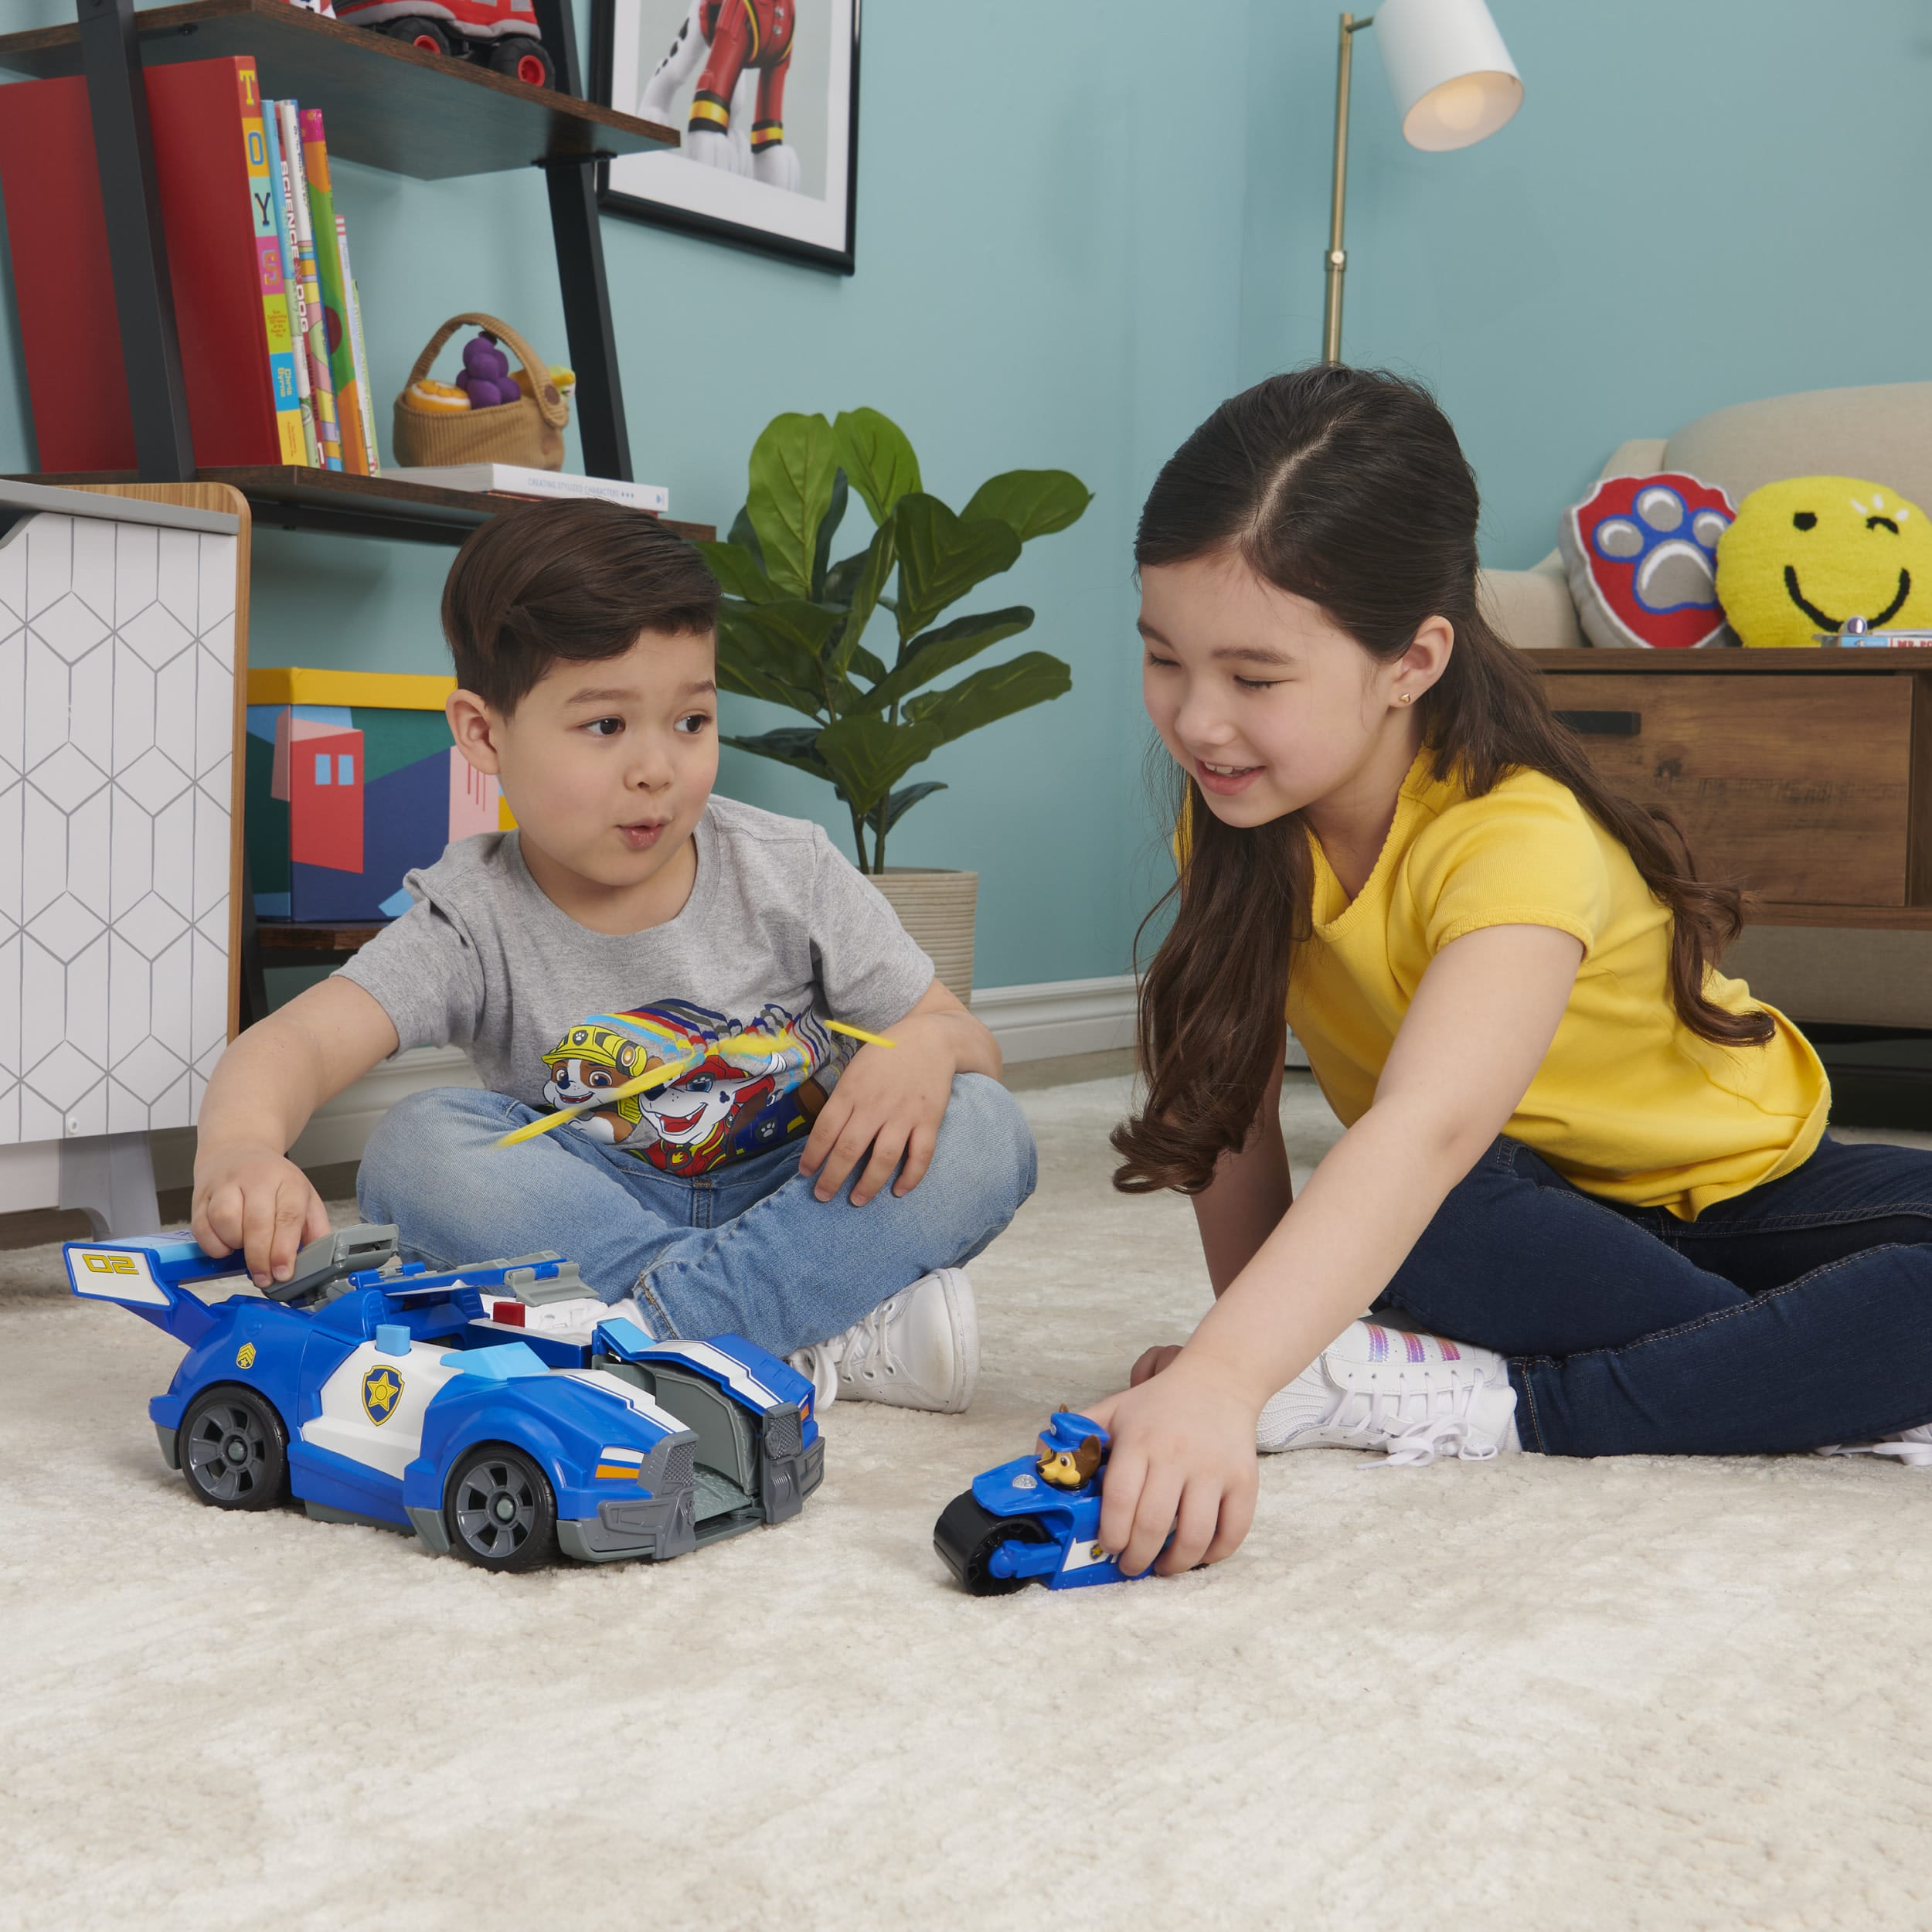 Discover Spin Master Ltd's PAW Patrol: The Movie cruiser at Walmart.